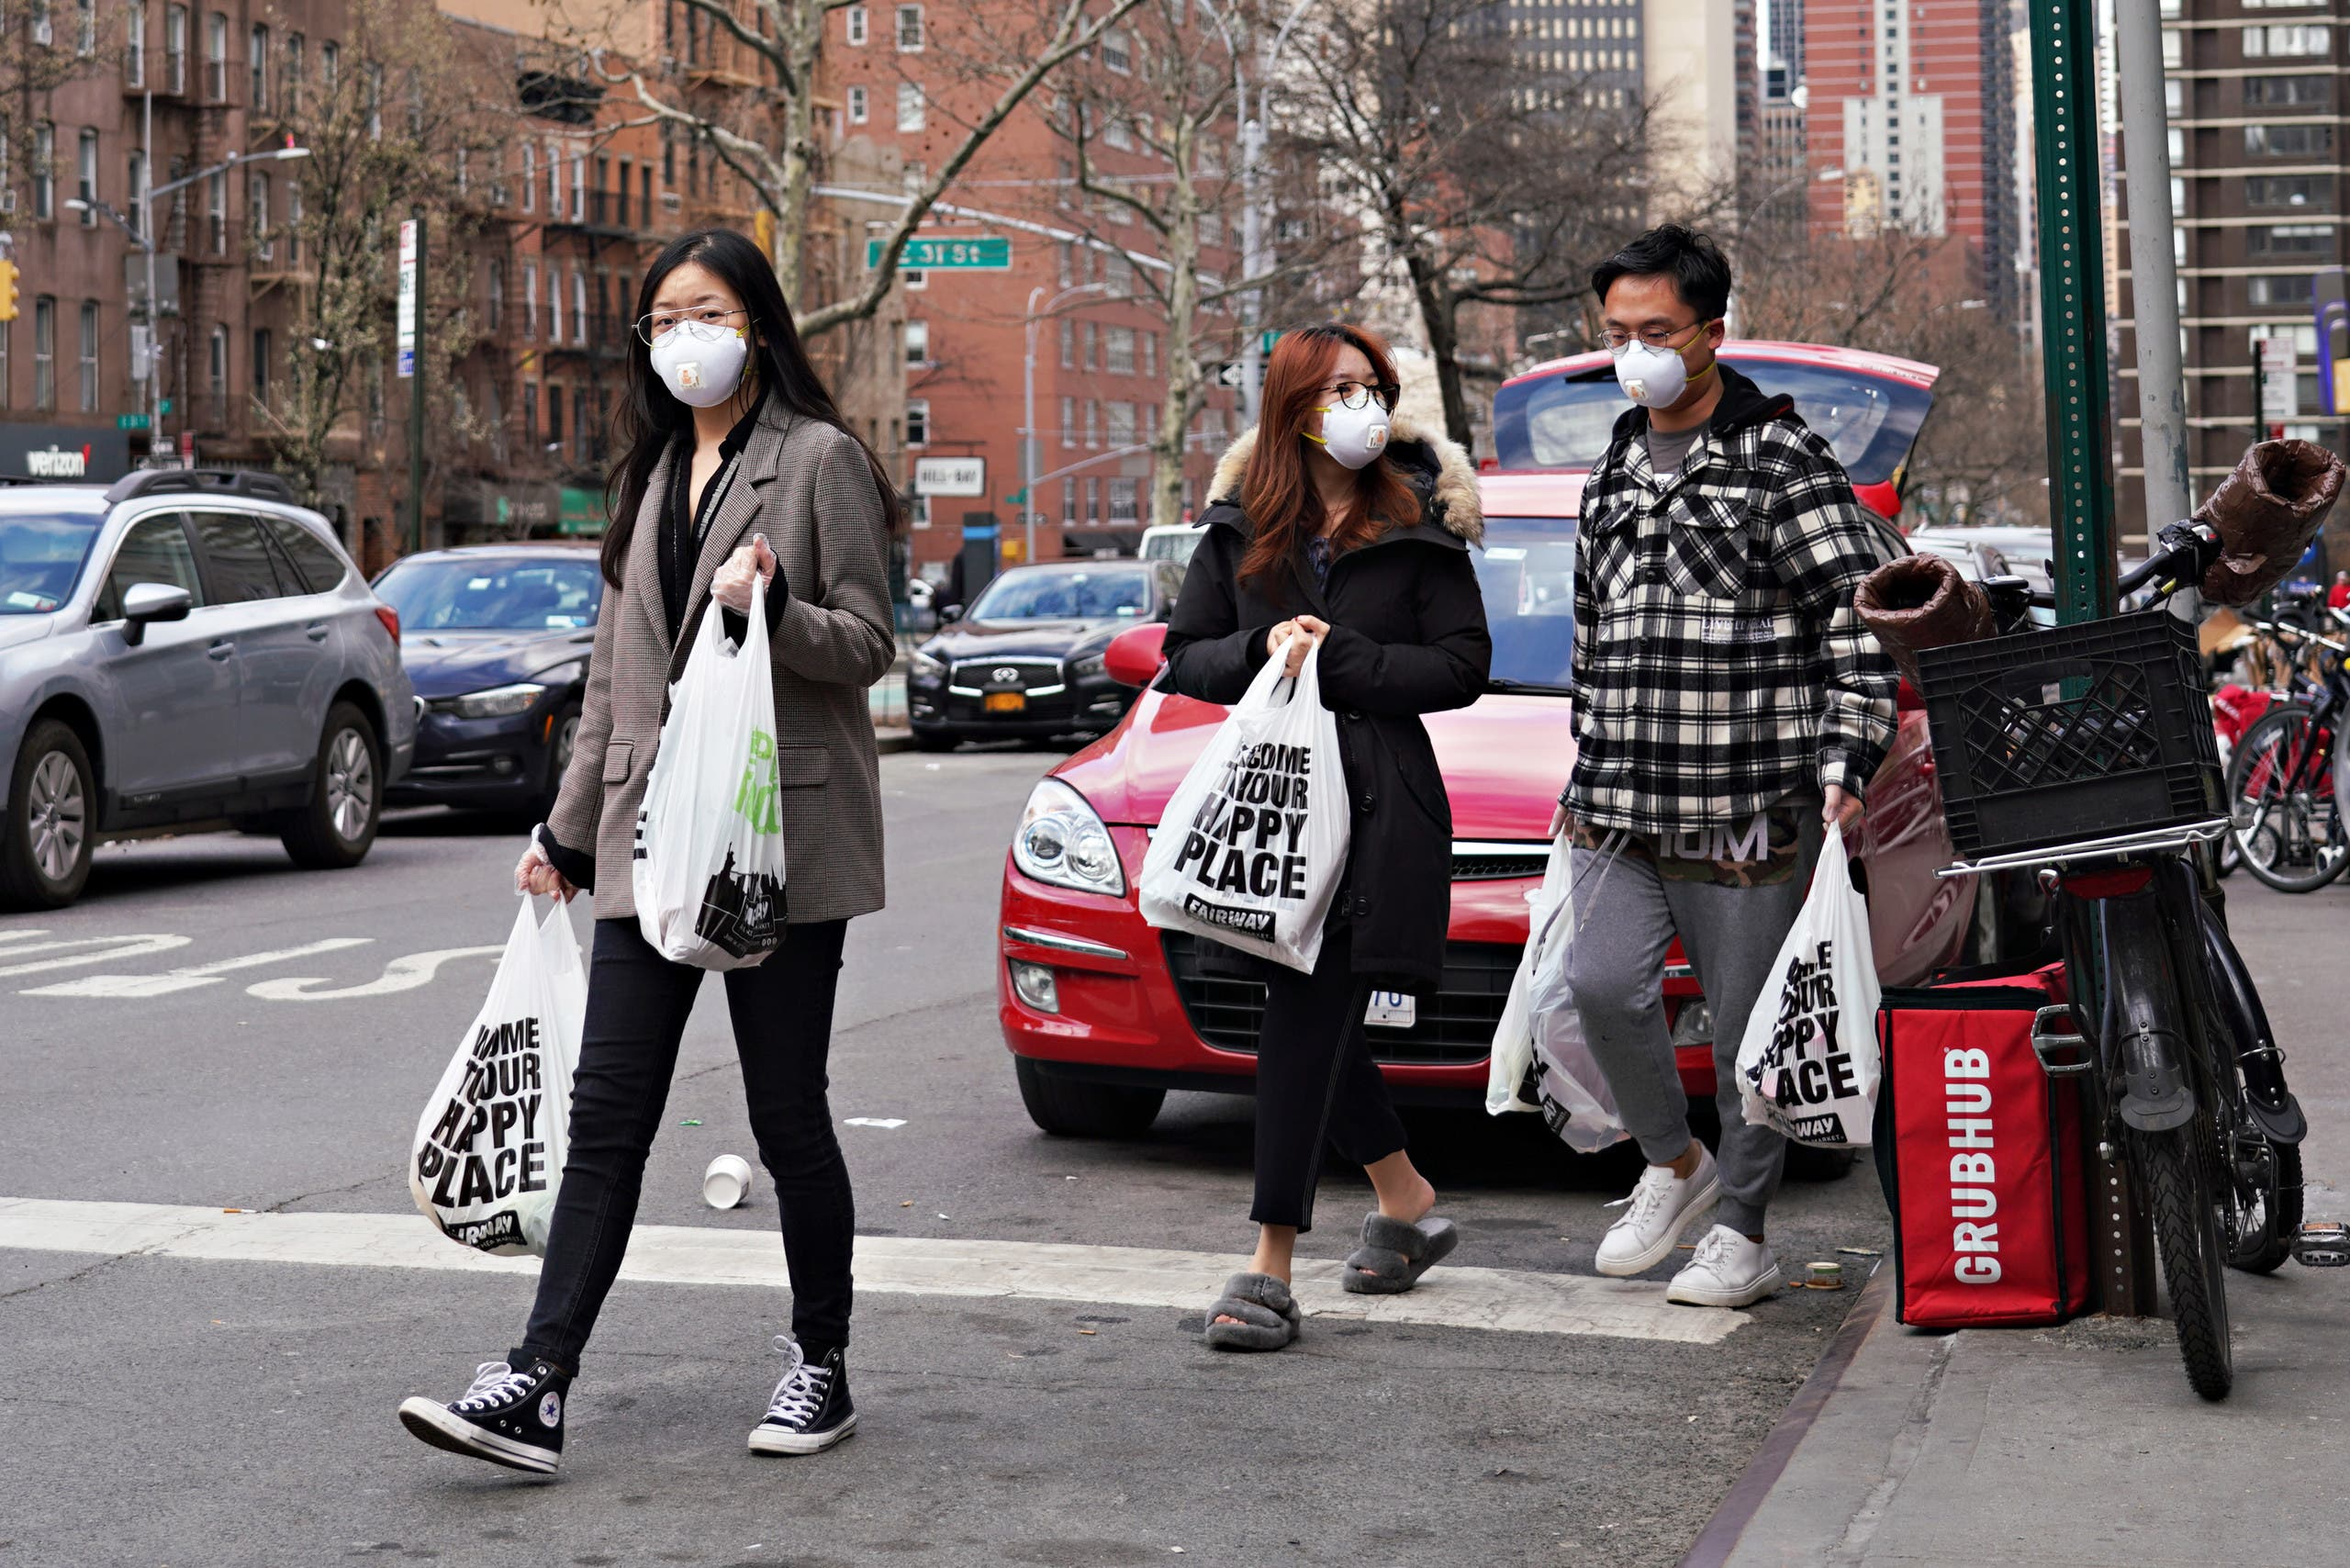 Shoppers wear protective face masks as they leave Fairway Market as coronavirus continues to spread across the United States on March 16, 2020 in New York City.  (AFP)